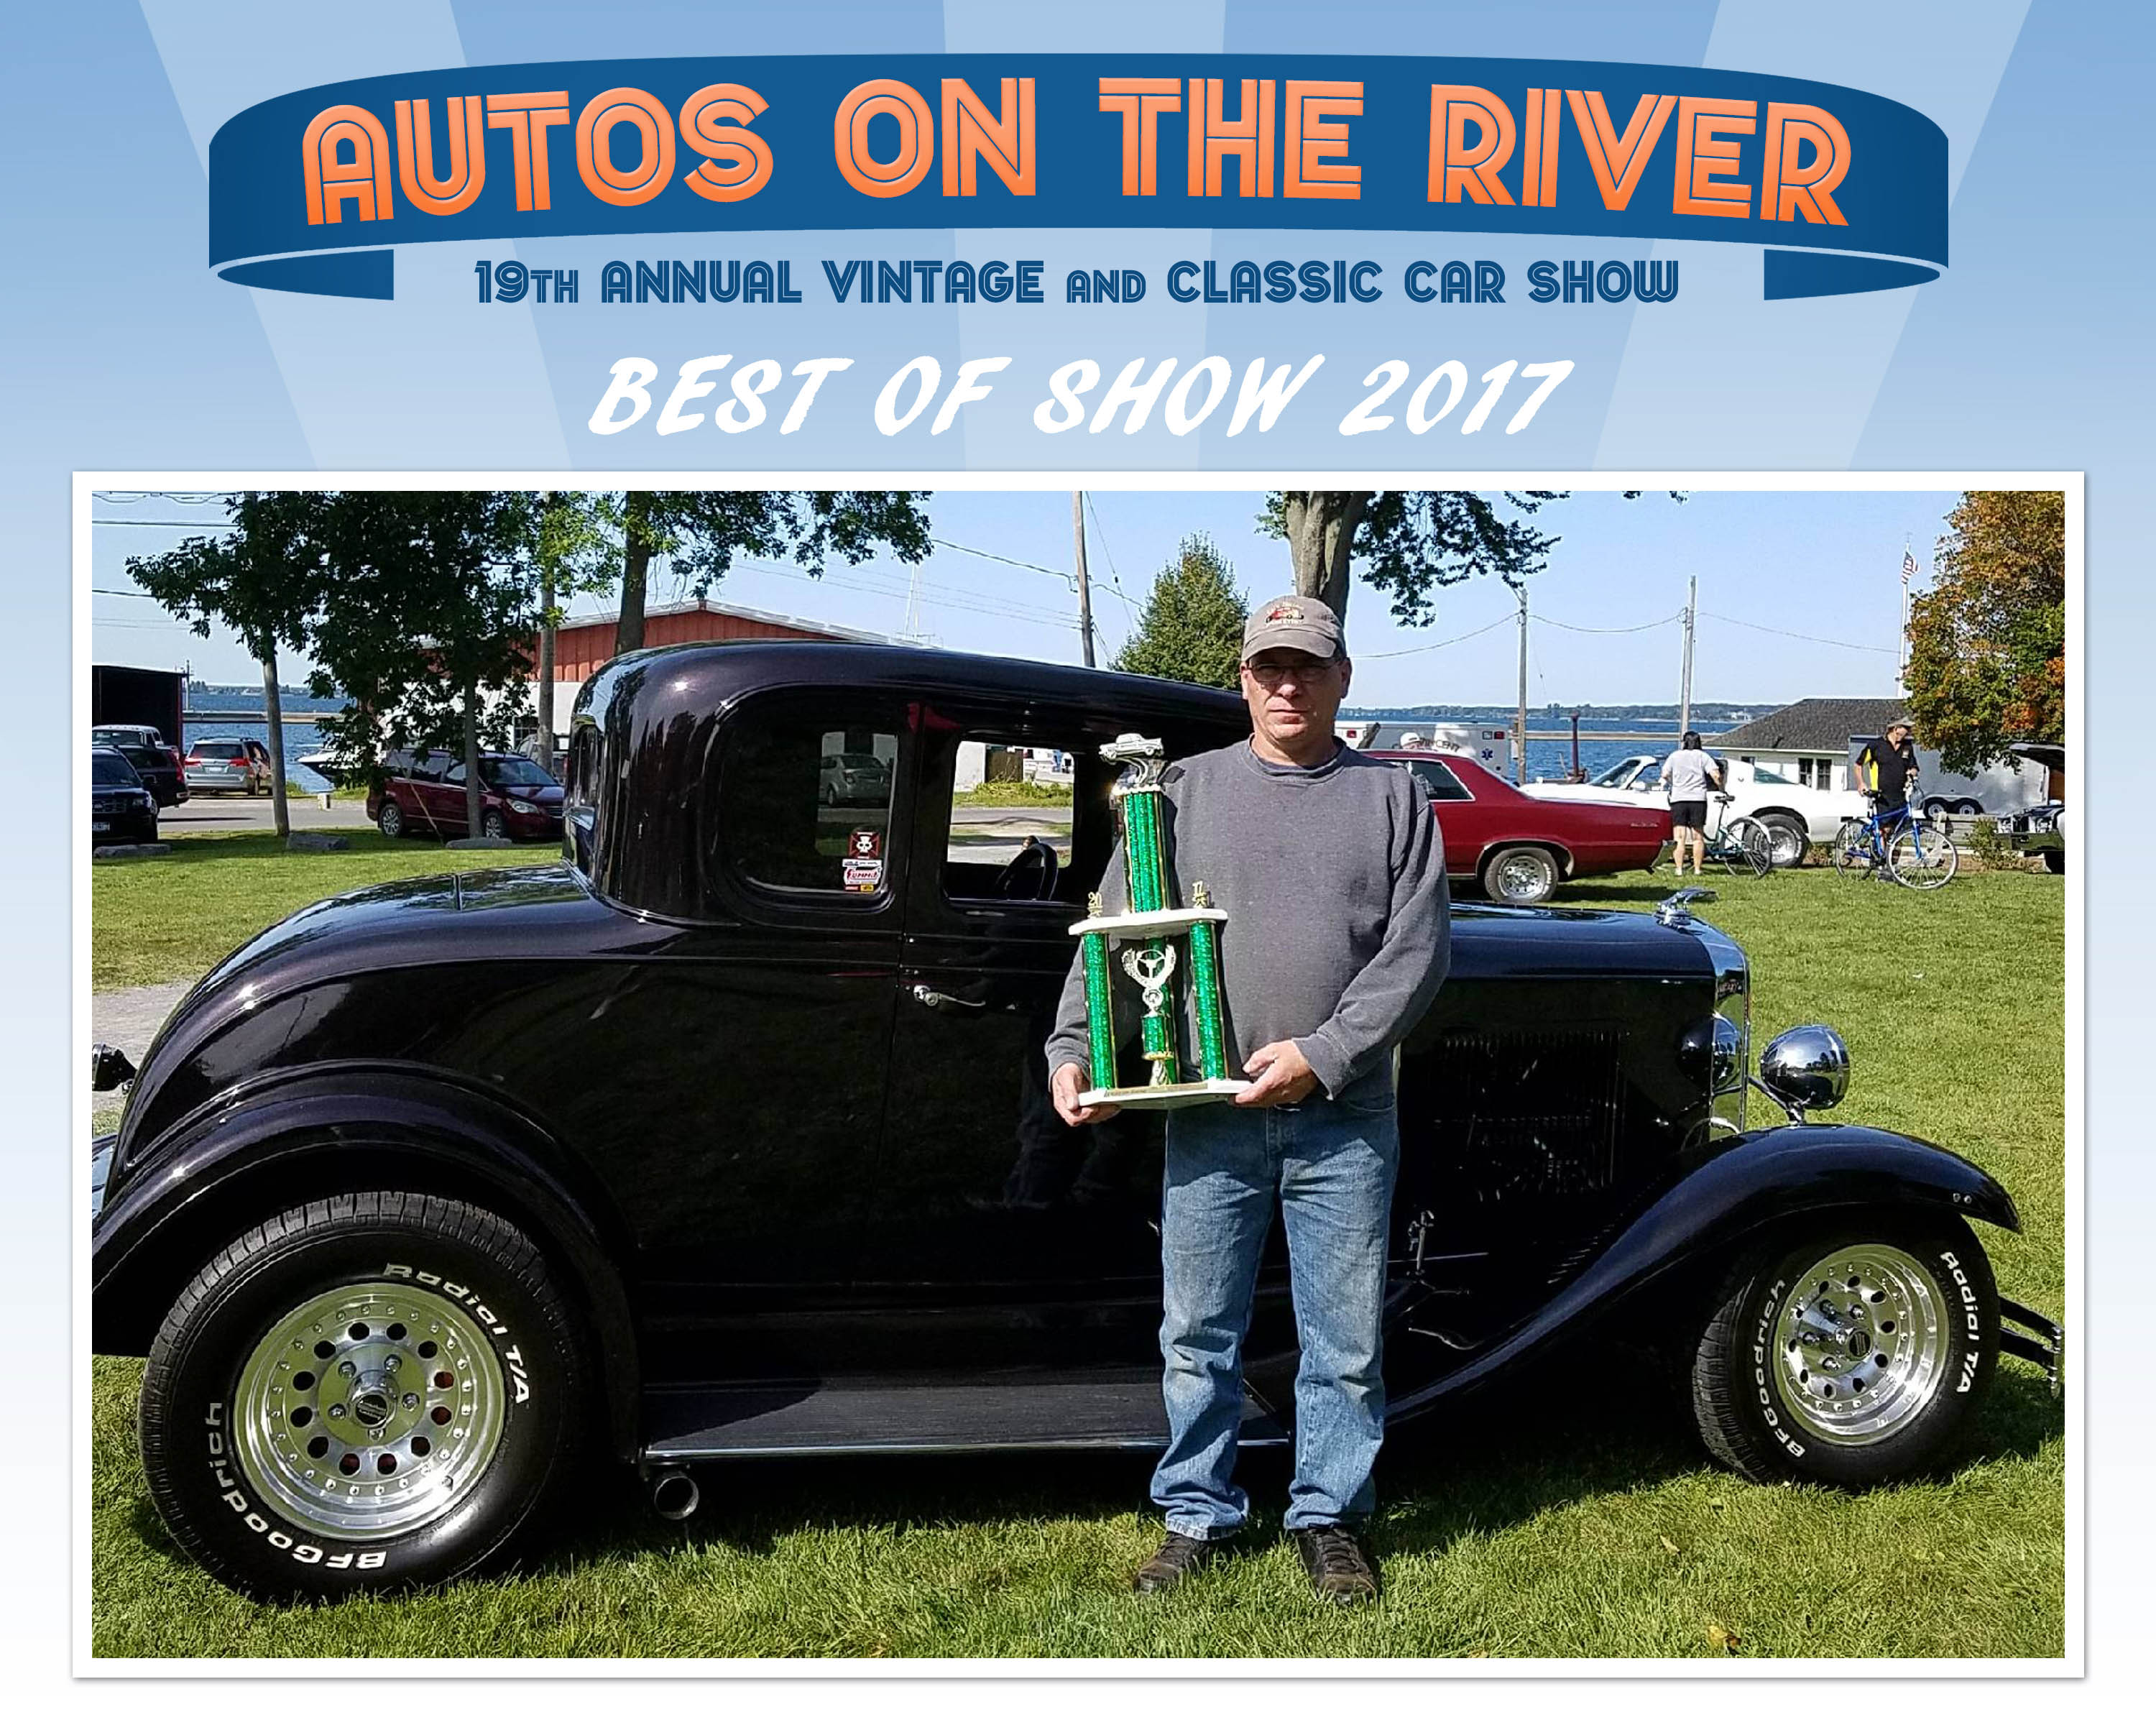 20th Annual Autos on the River - Vintage & Classic Car Show Tickets ...